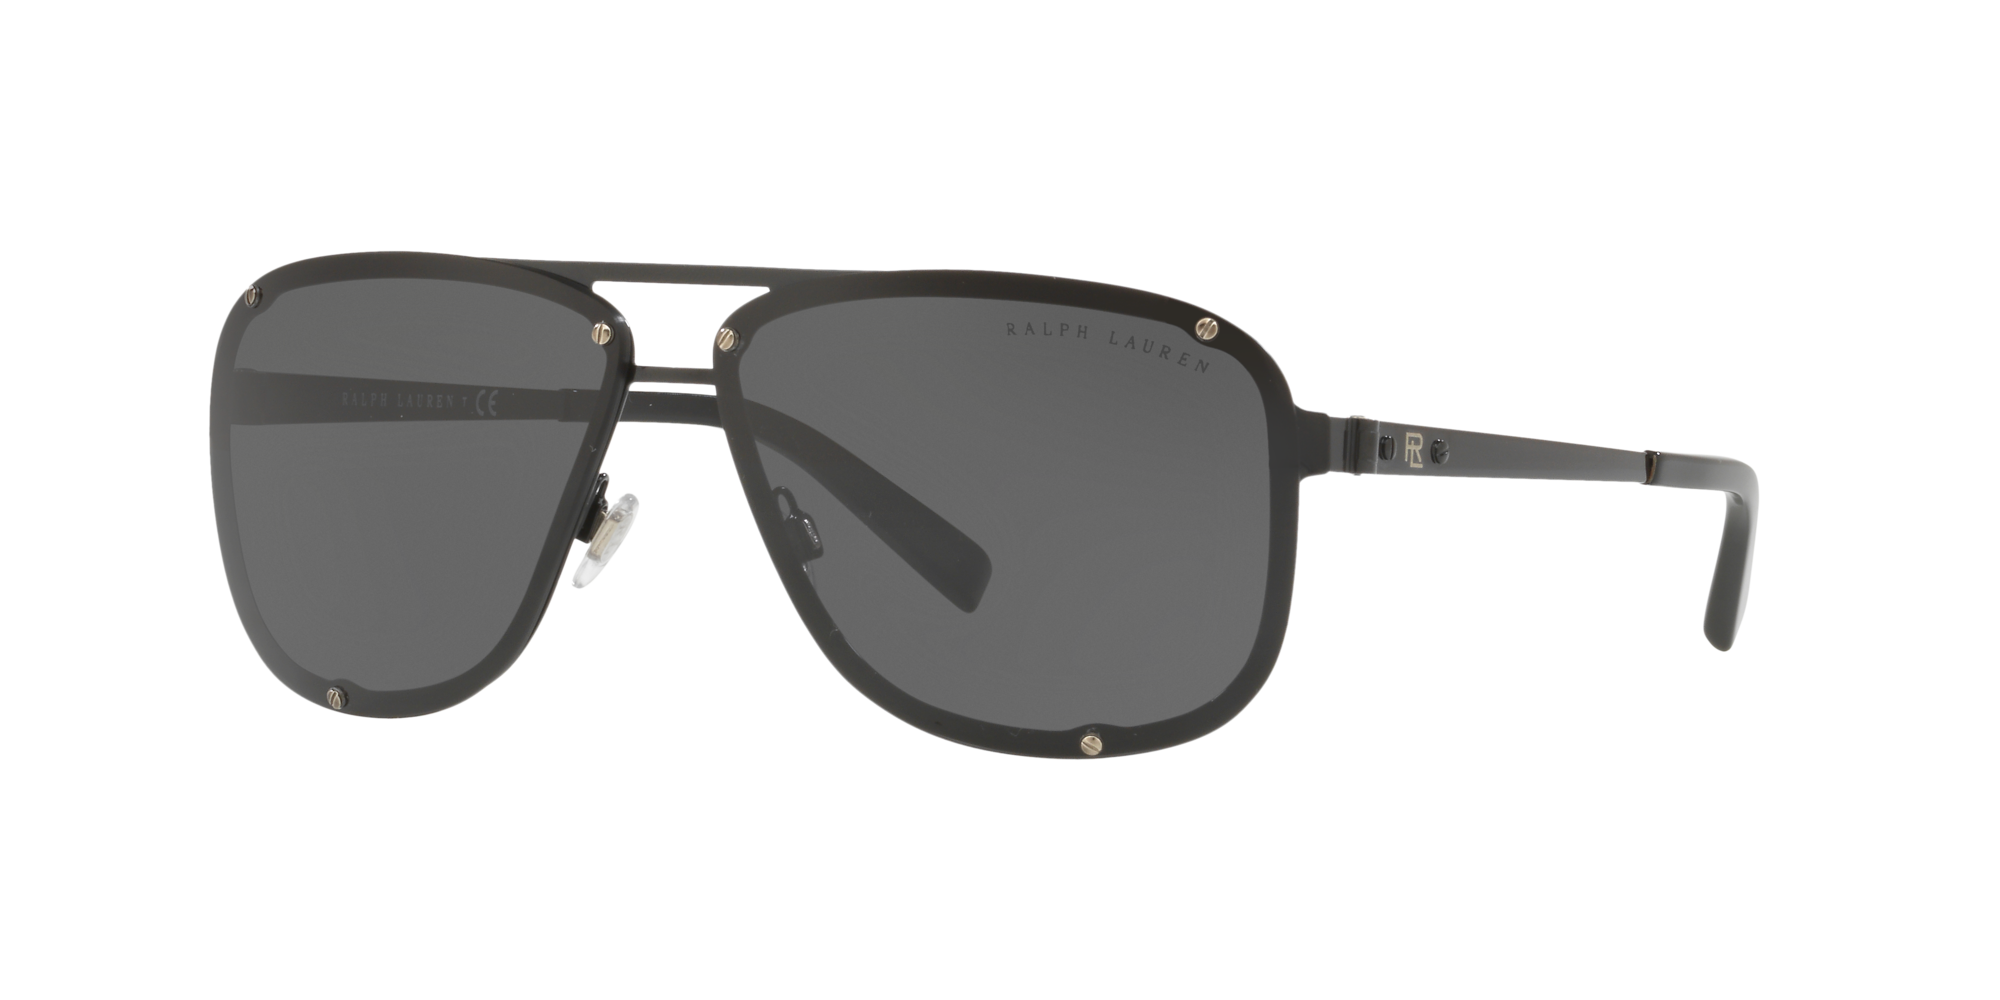 Ralph Lauren Man  RL7055 -  Frame color: Black, Lens color: Grey-Black, Size 64-10/140